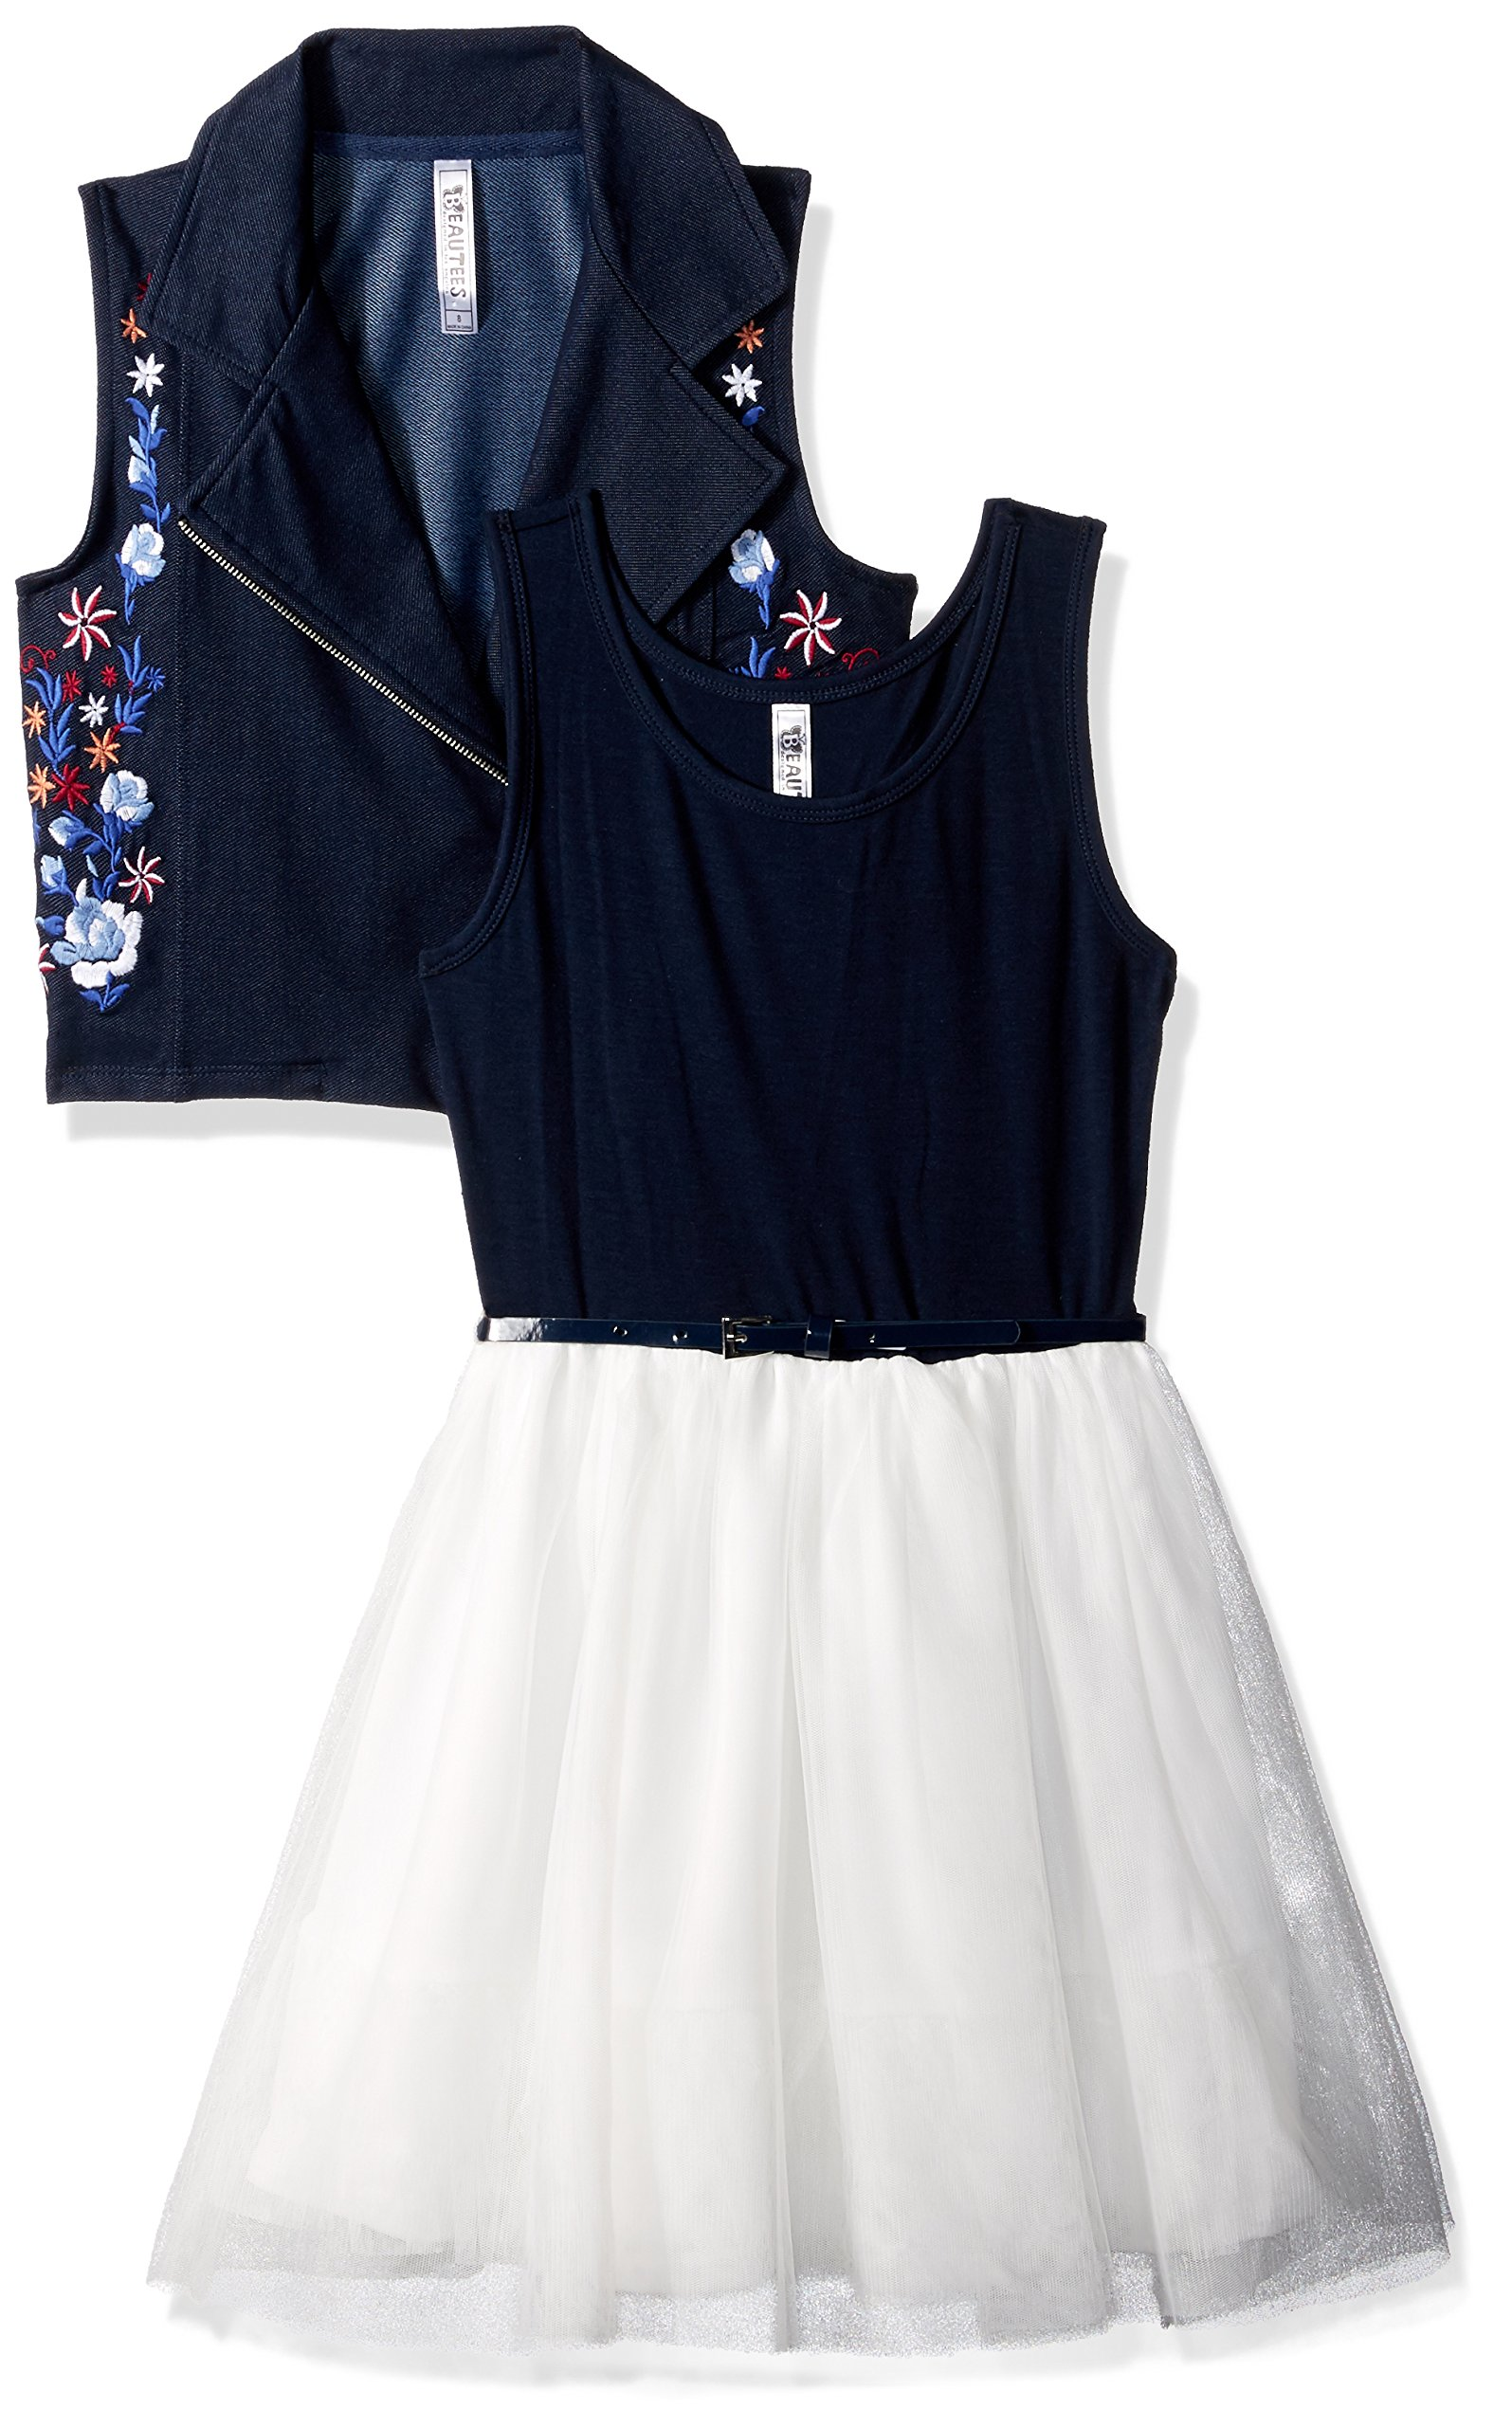 Beautees Big Girls' 2pc Moto Embroidered Jacket/SL Toulle Dress, Denim, 16 by Beautees (Image #3)